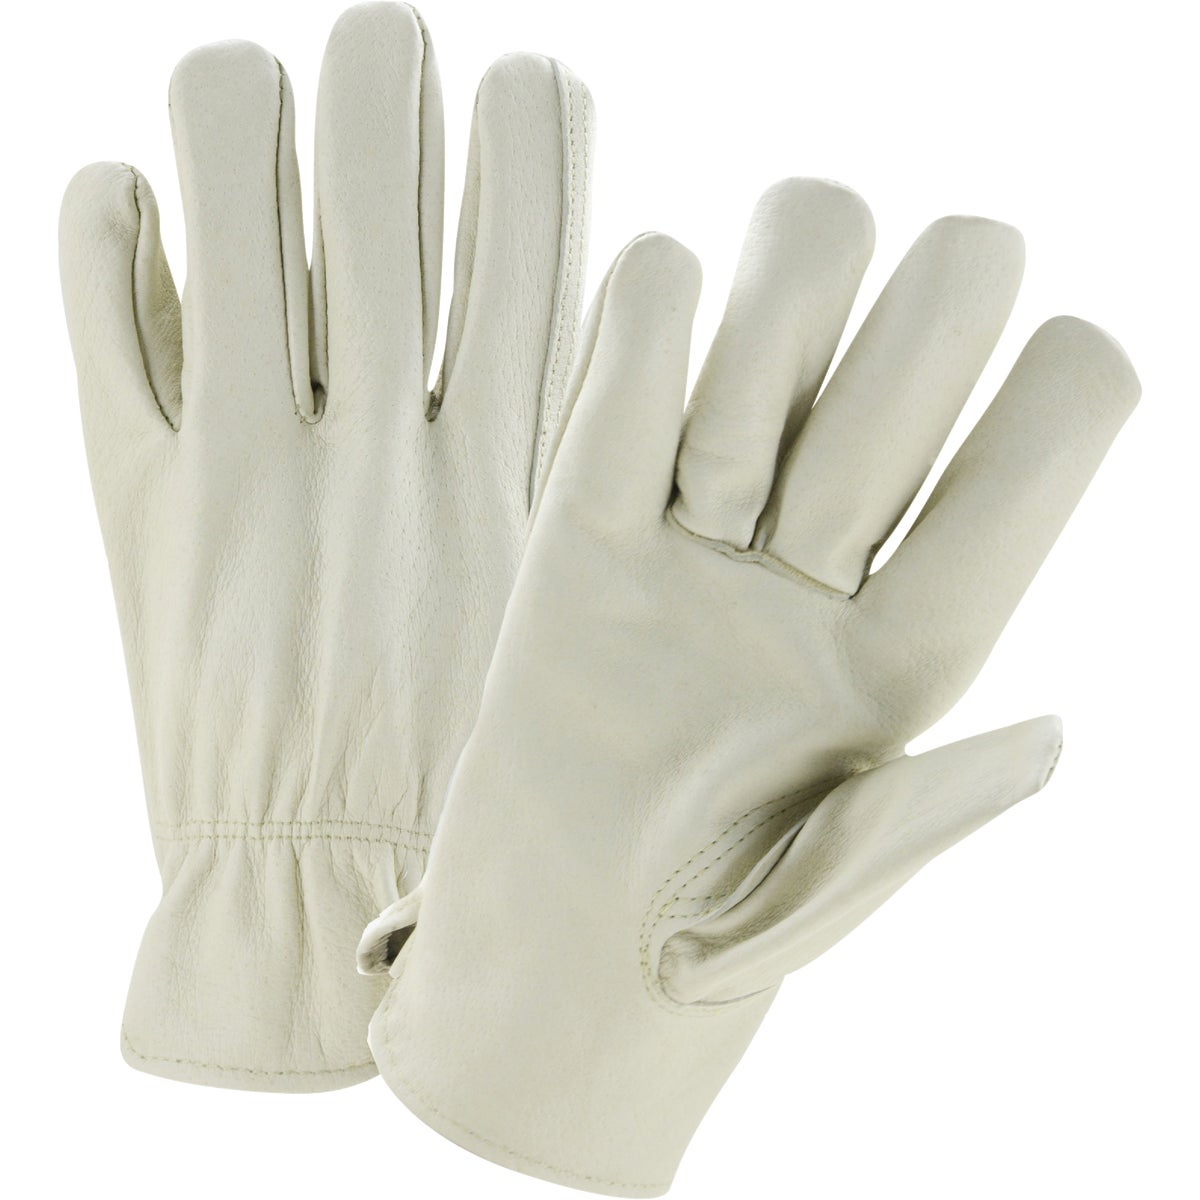 XL GRAIN PIGSKIN GLOVE - 1133XL by Wells Lamont